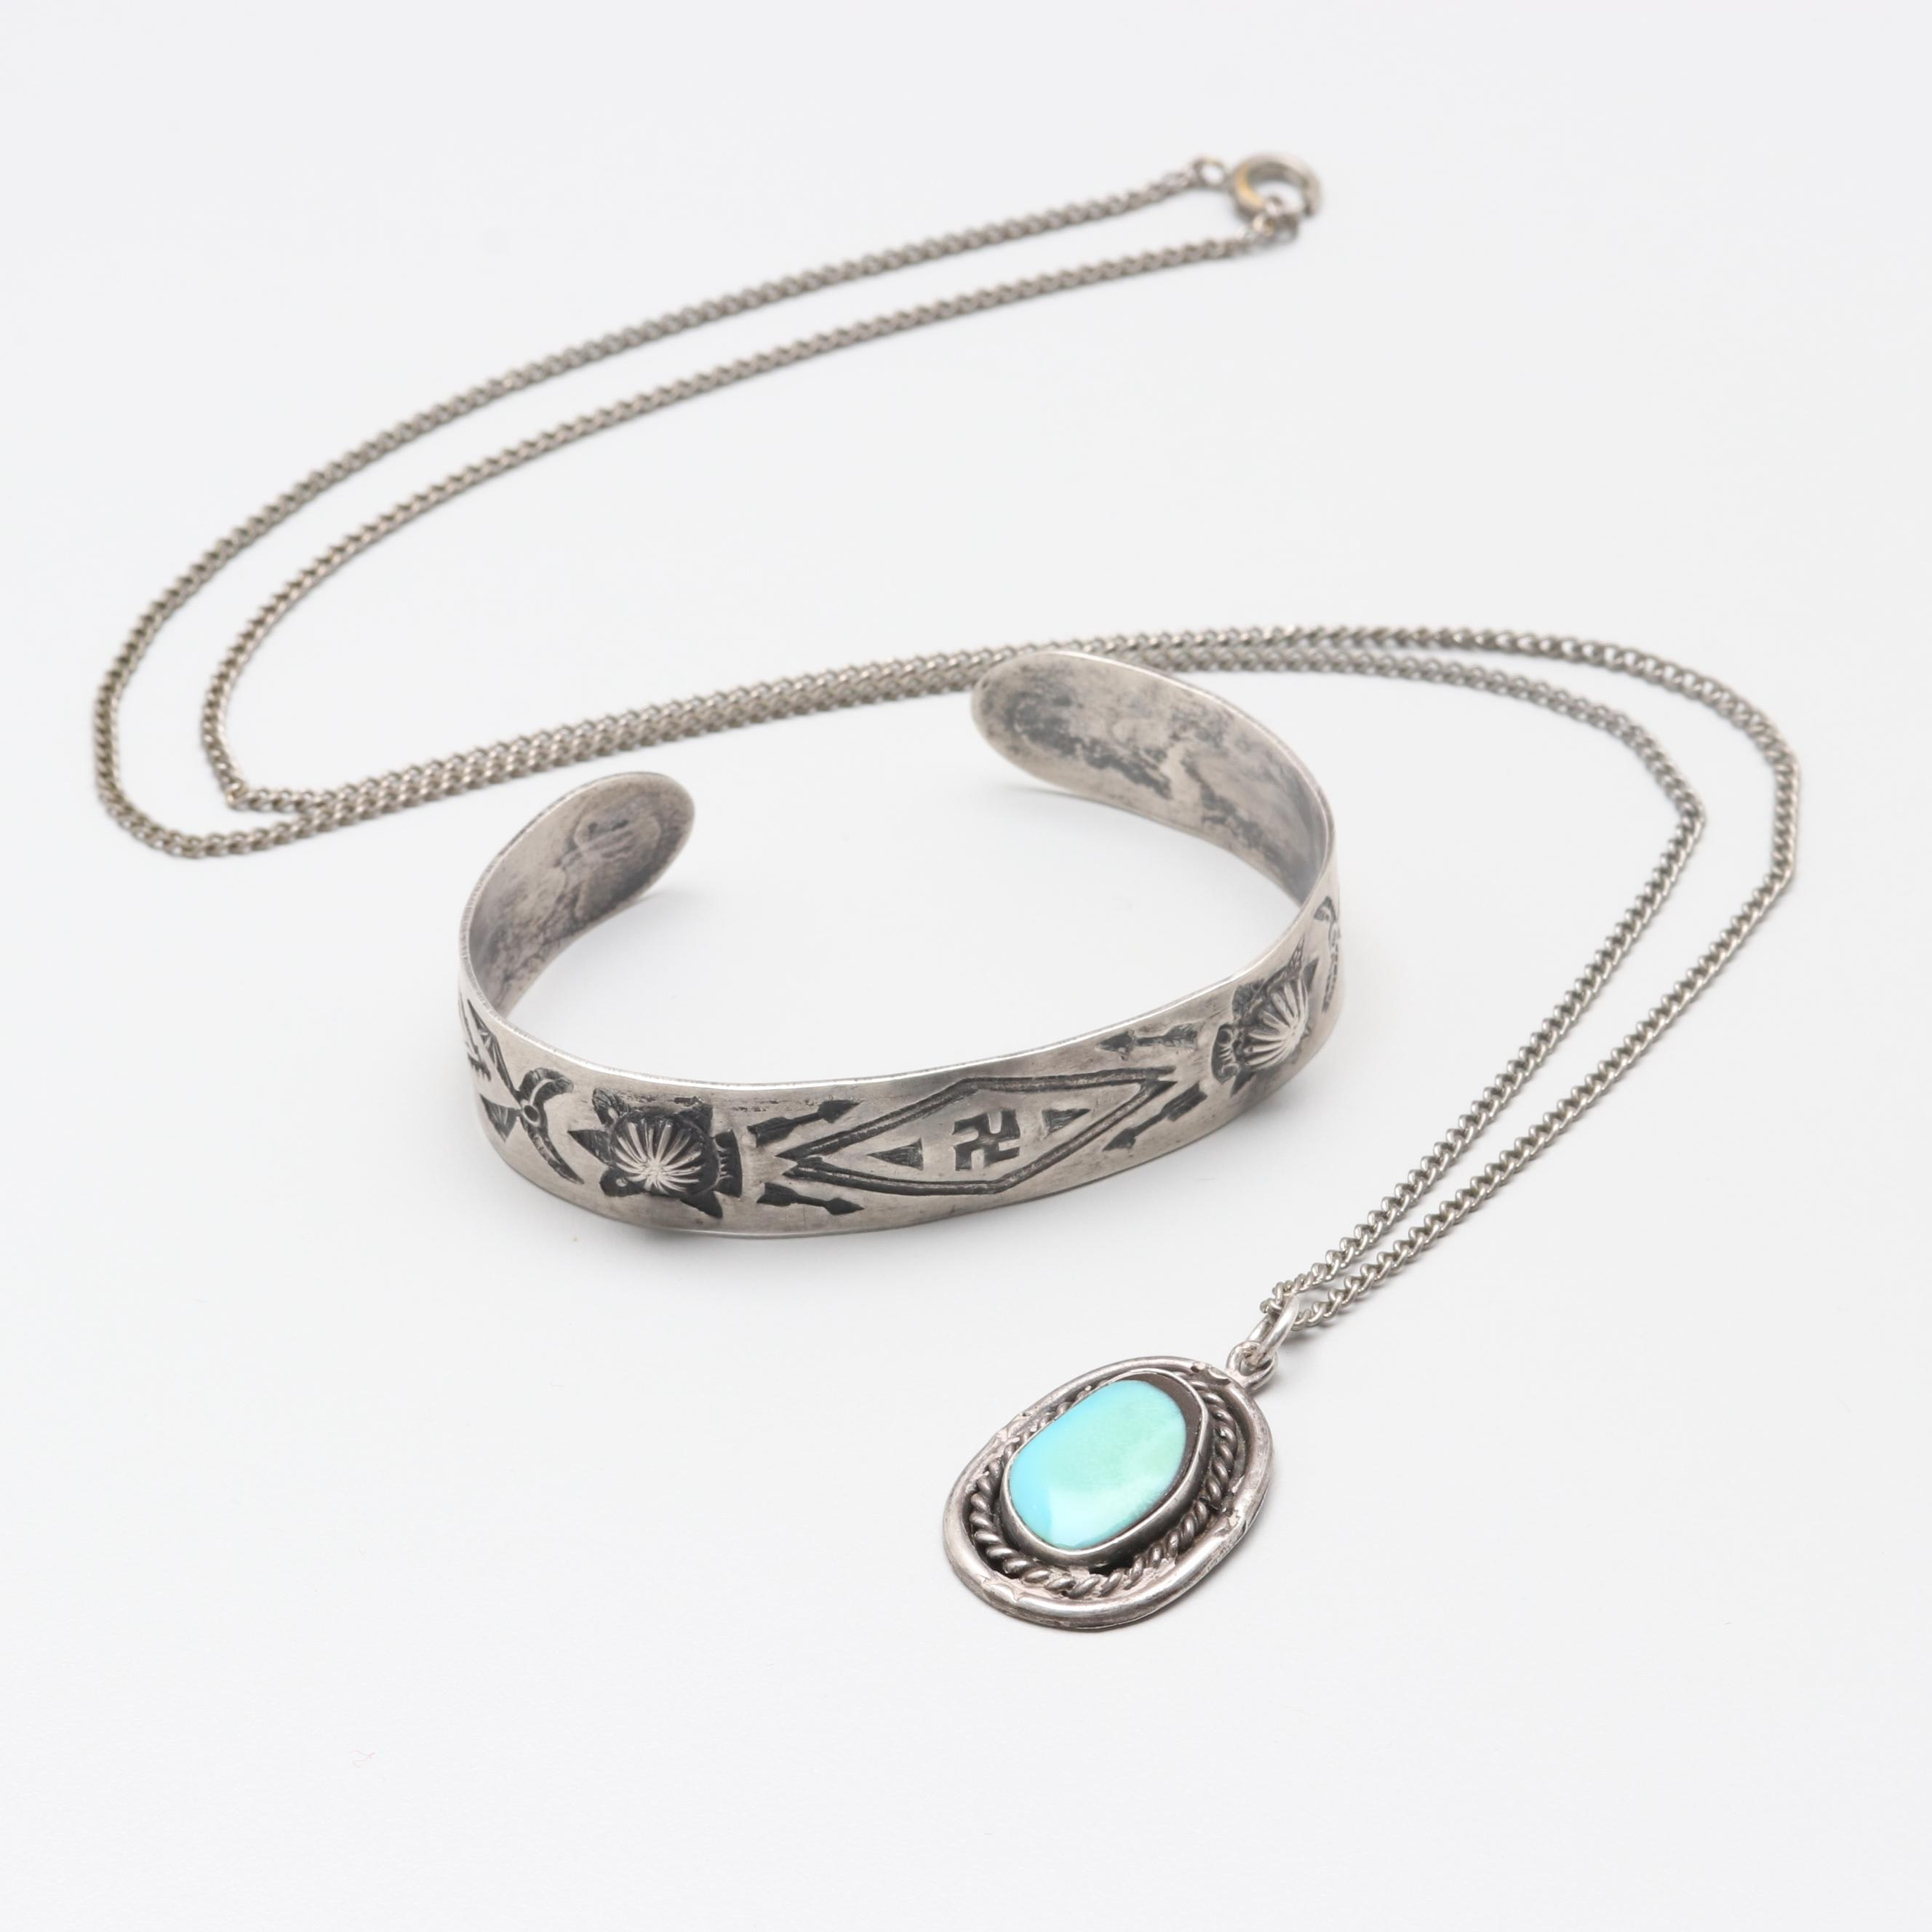 Sterling Silver Turquoise Pendant on Costume Chain and Sterling Silver Bracelet